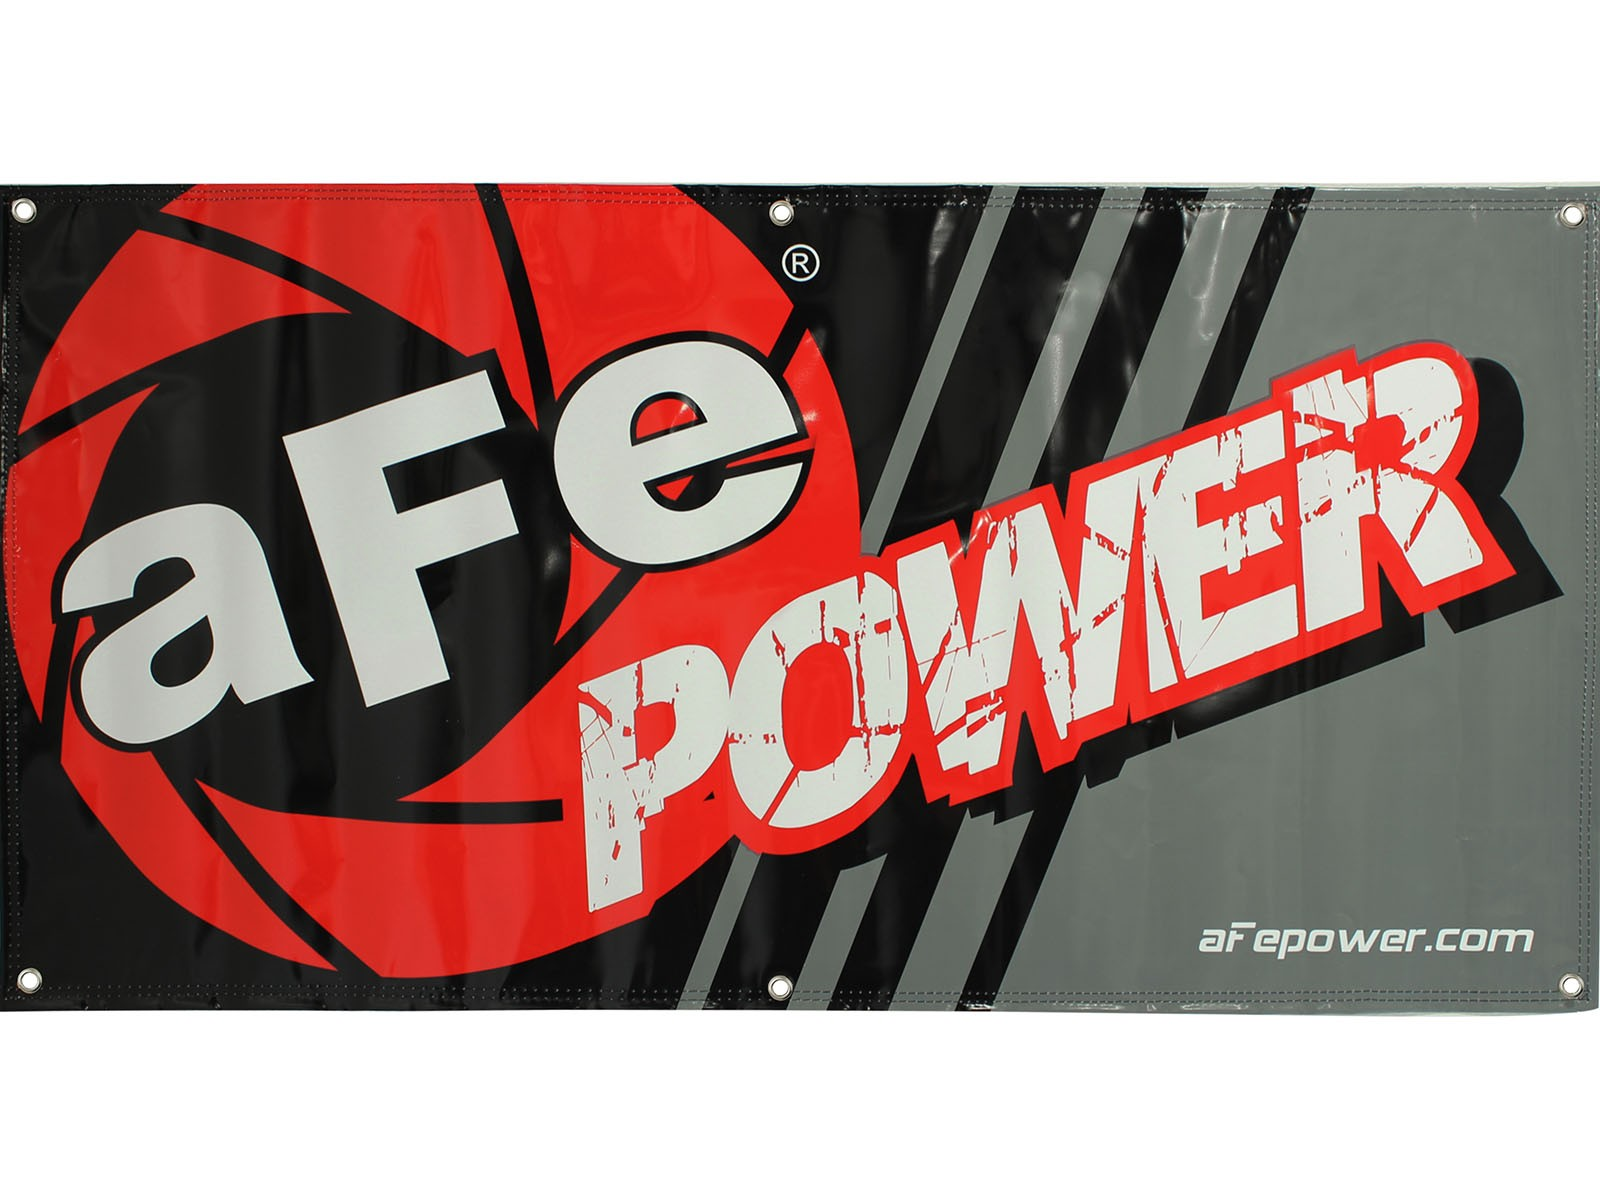 aFe POWER 40-10038 Banner, 3' x 8' ft.; aFe Power